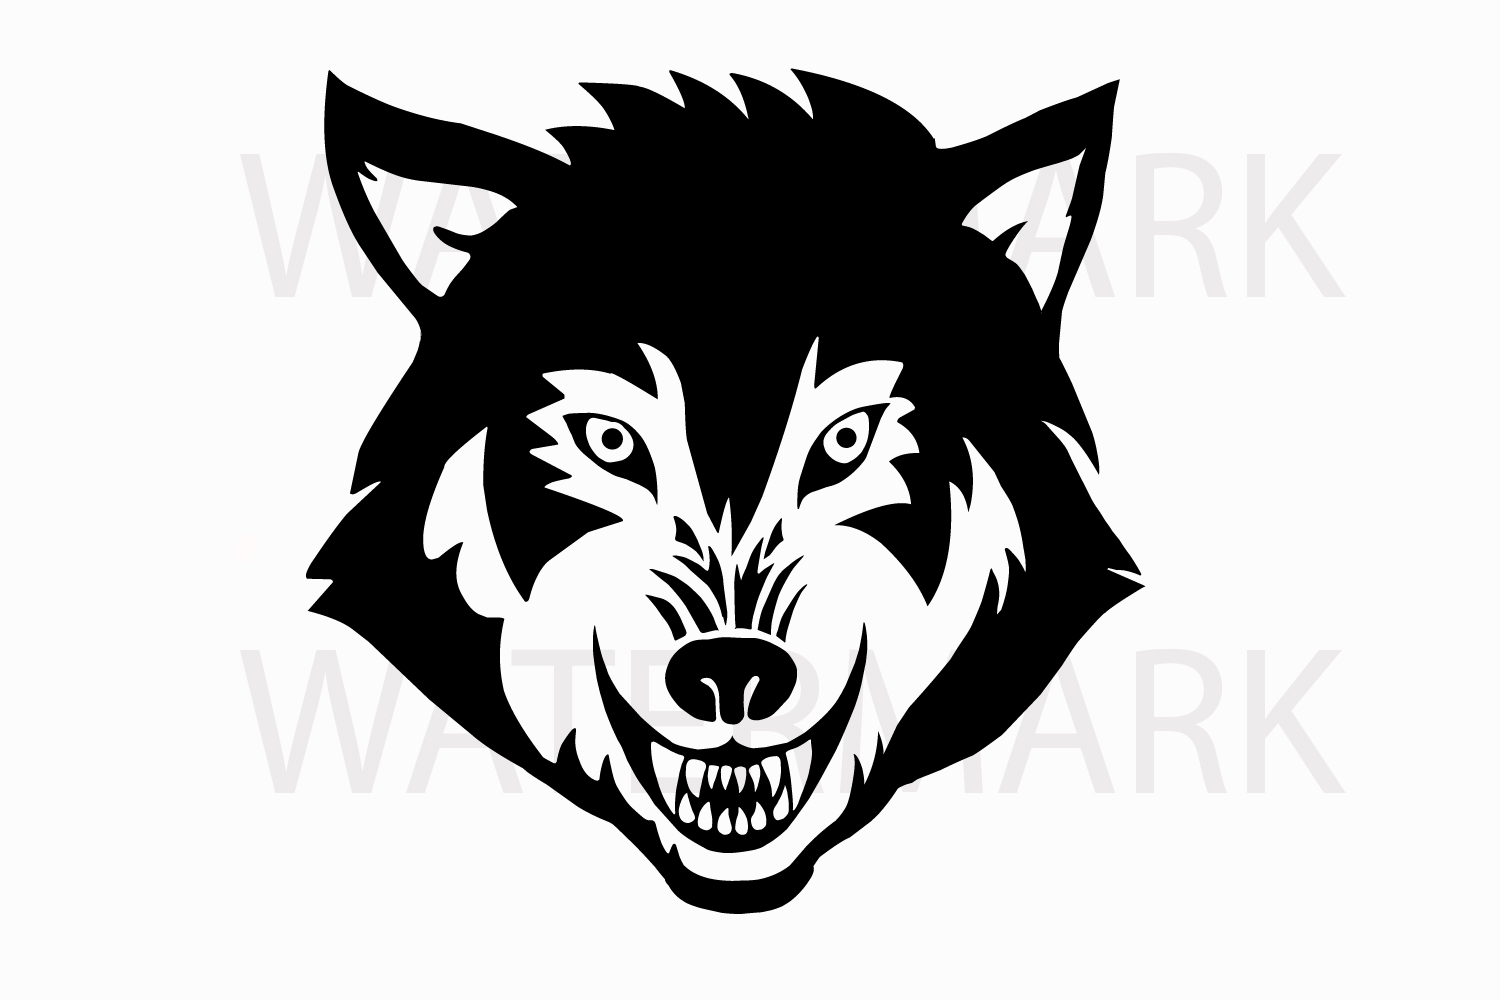 Wolf Face in Black with Transparent Background - SVG/JPG/PNG Hand Drawing example image 1